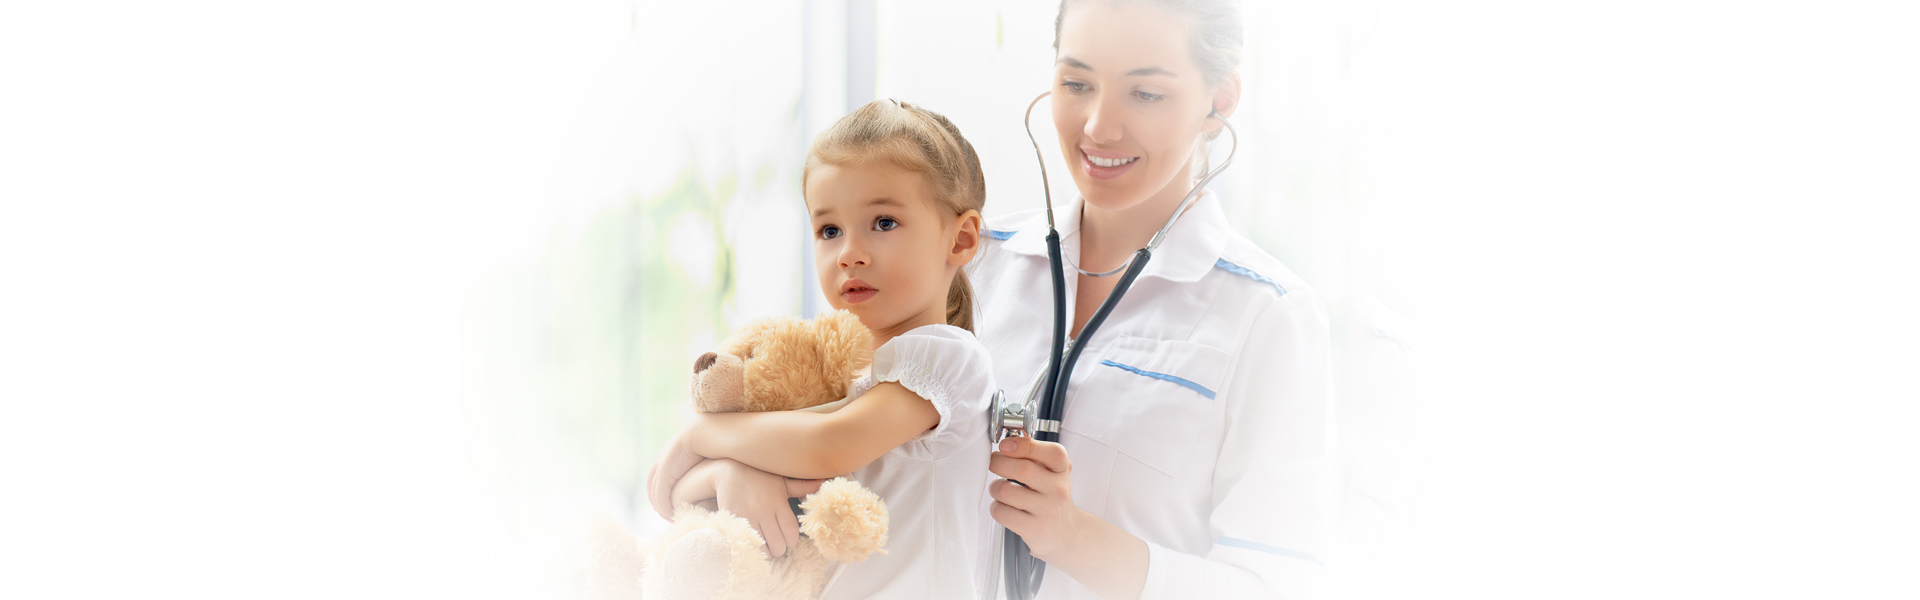 Is Your Child at Risk for Medical Errors in Your Local Emergency Room?